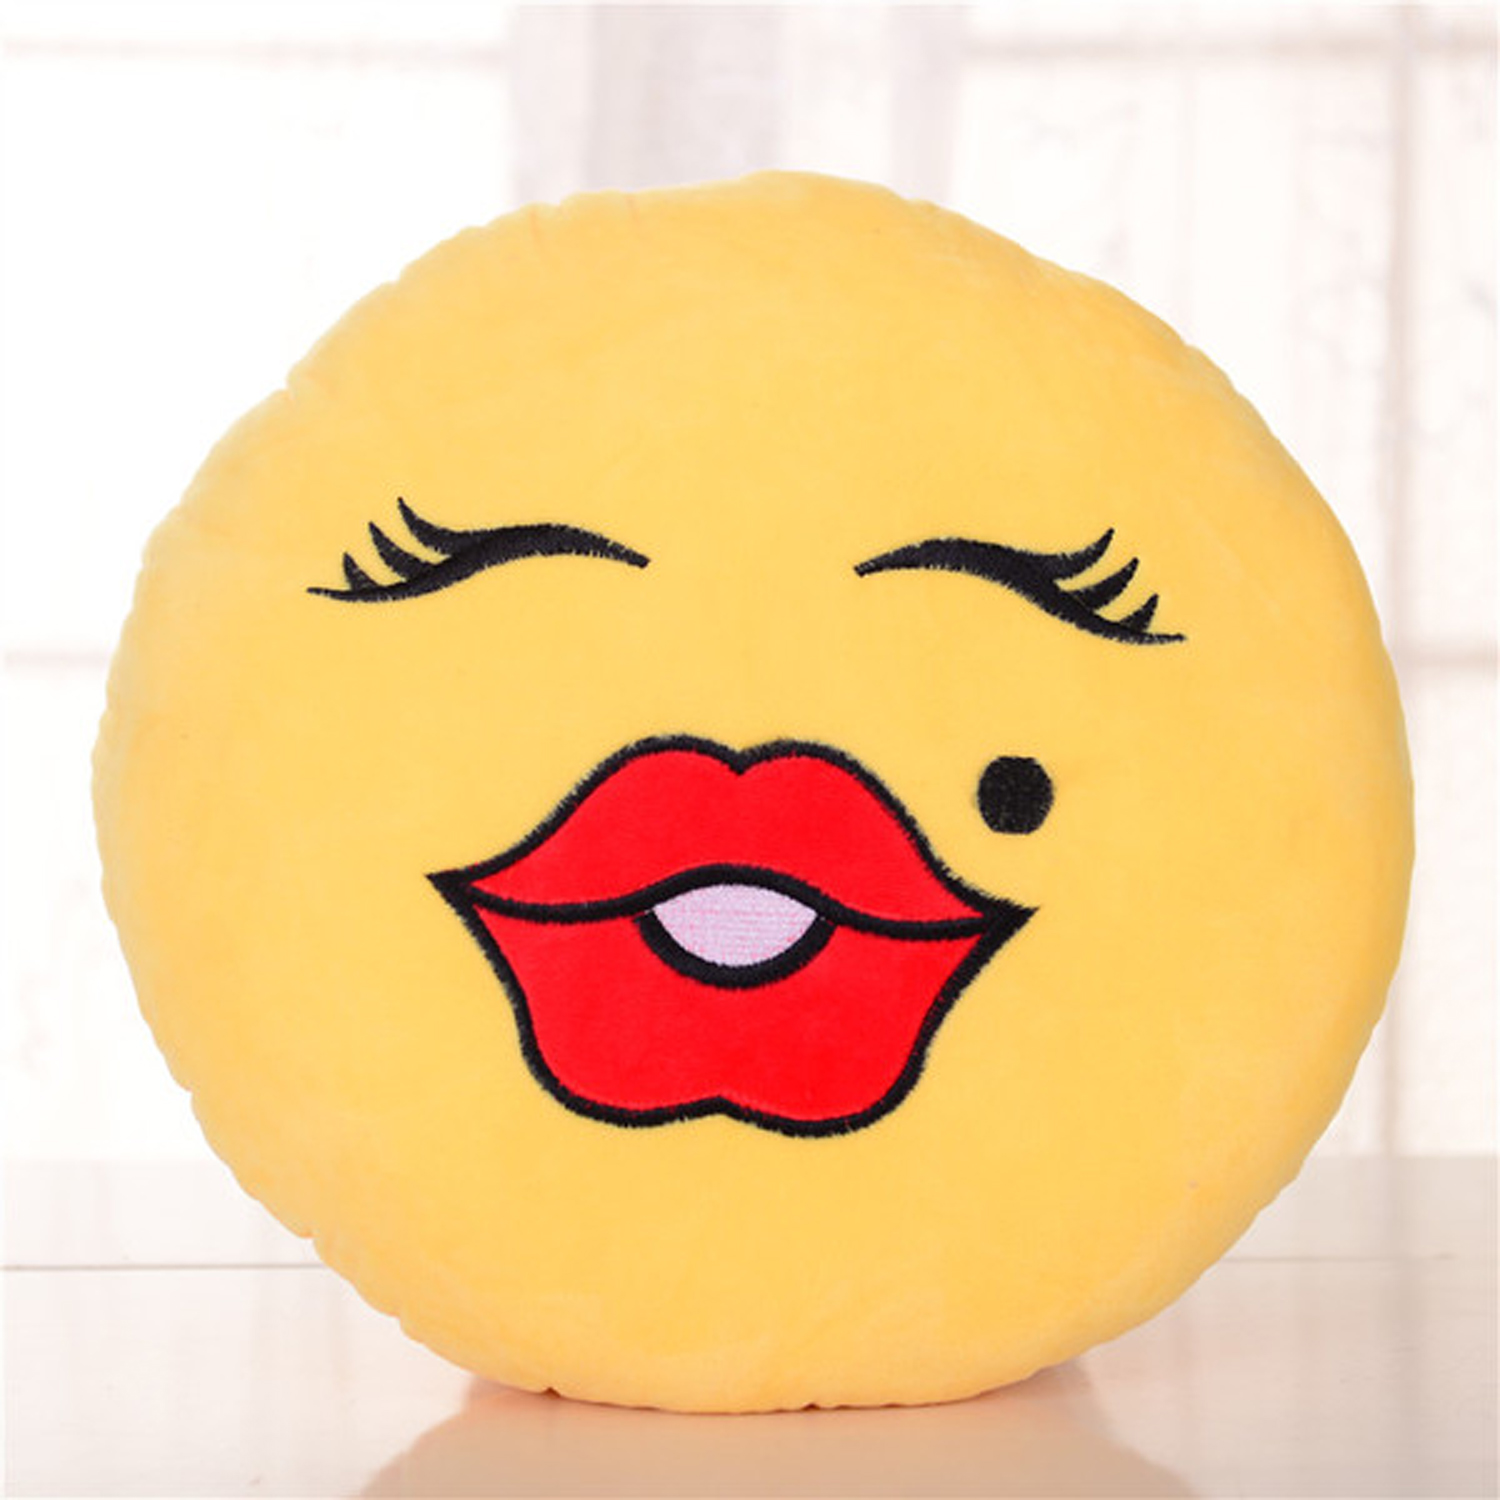 BH Toys Emoji Plush Expression Pillow - Beauty Face